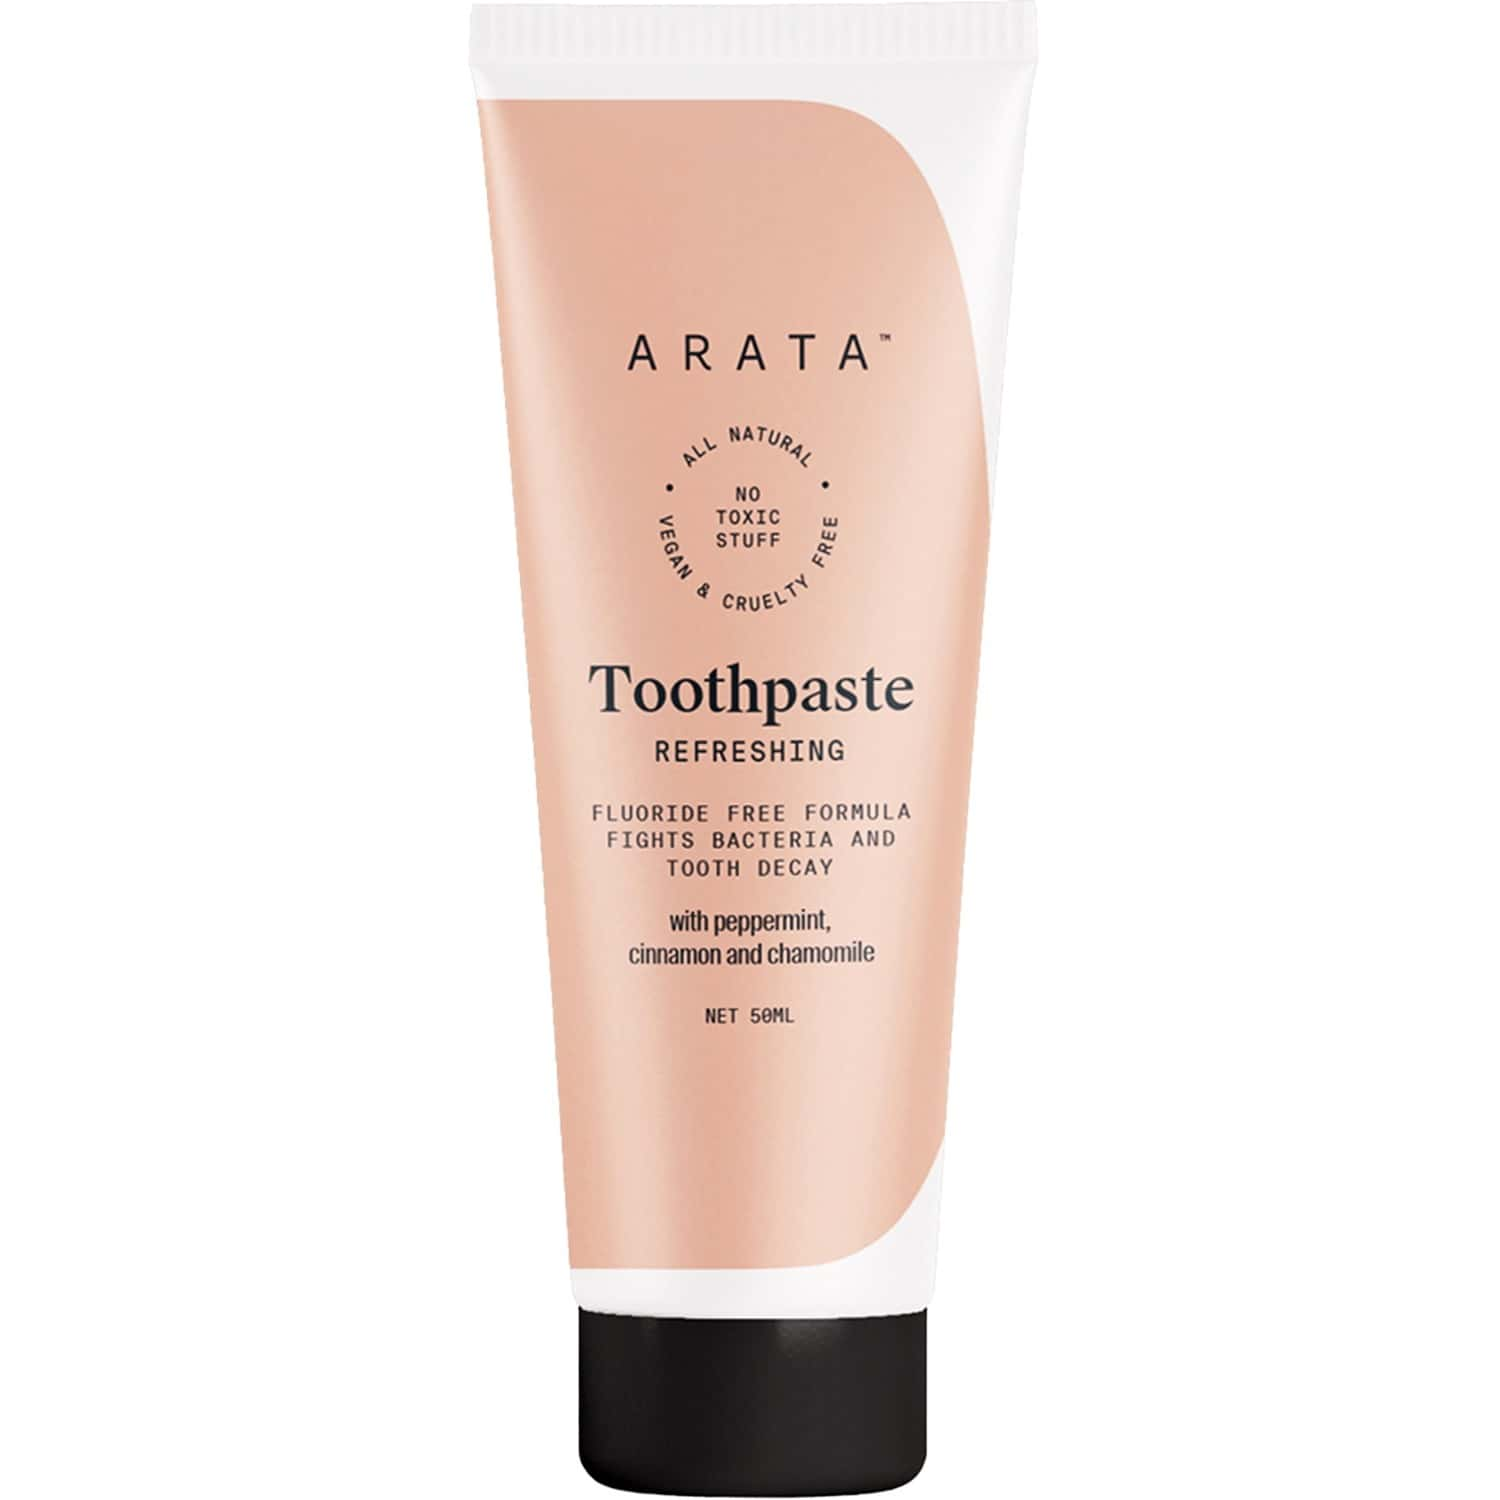 Arata Natural Refreshing Toothpaste With Peppermint, Cinnamon & Chamomile - (50 Ml)